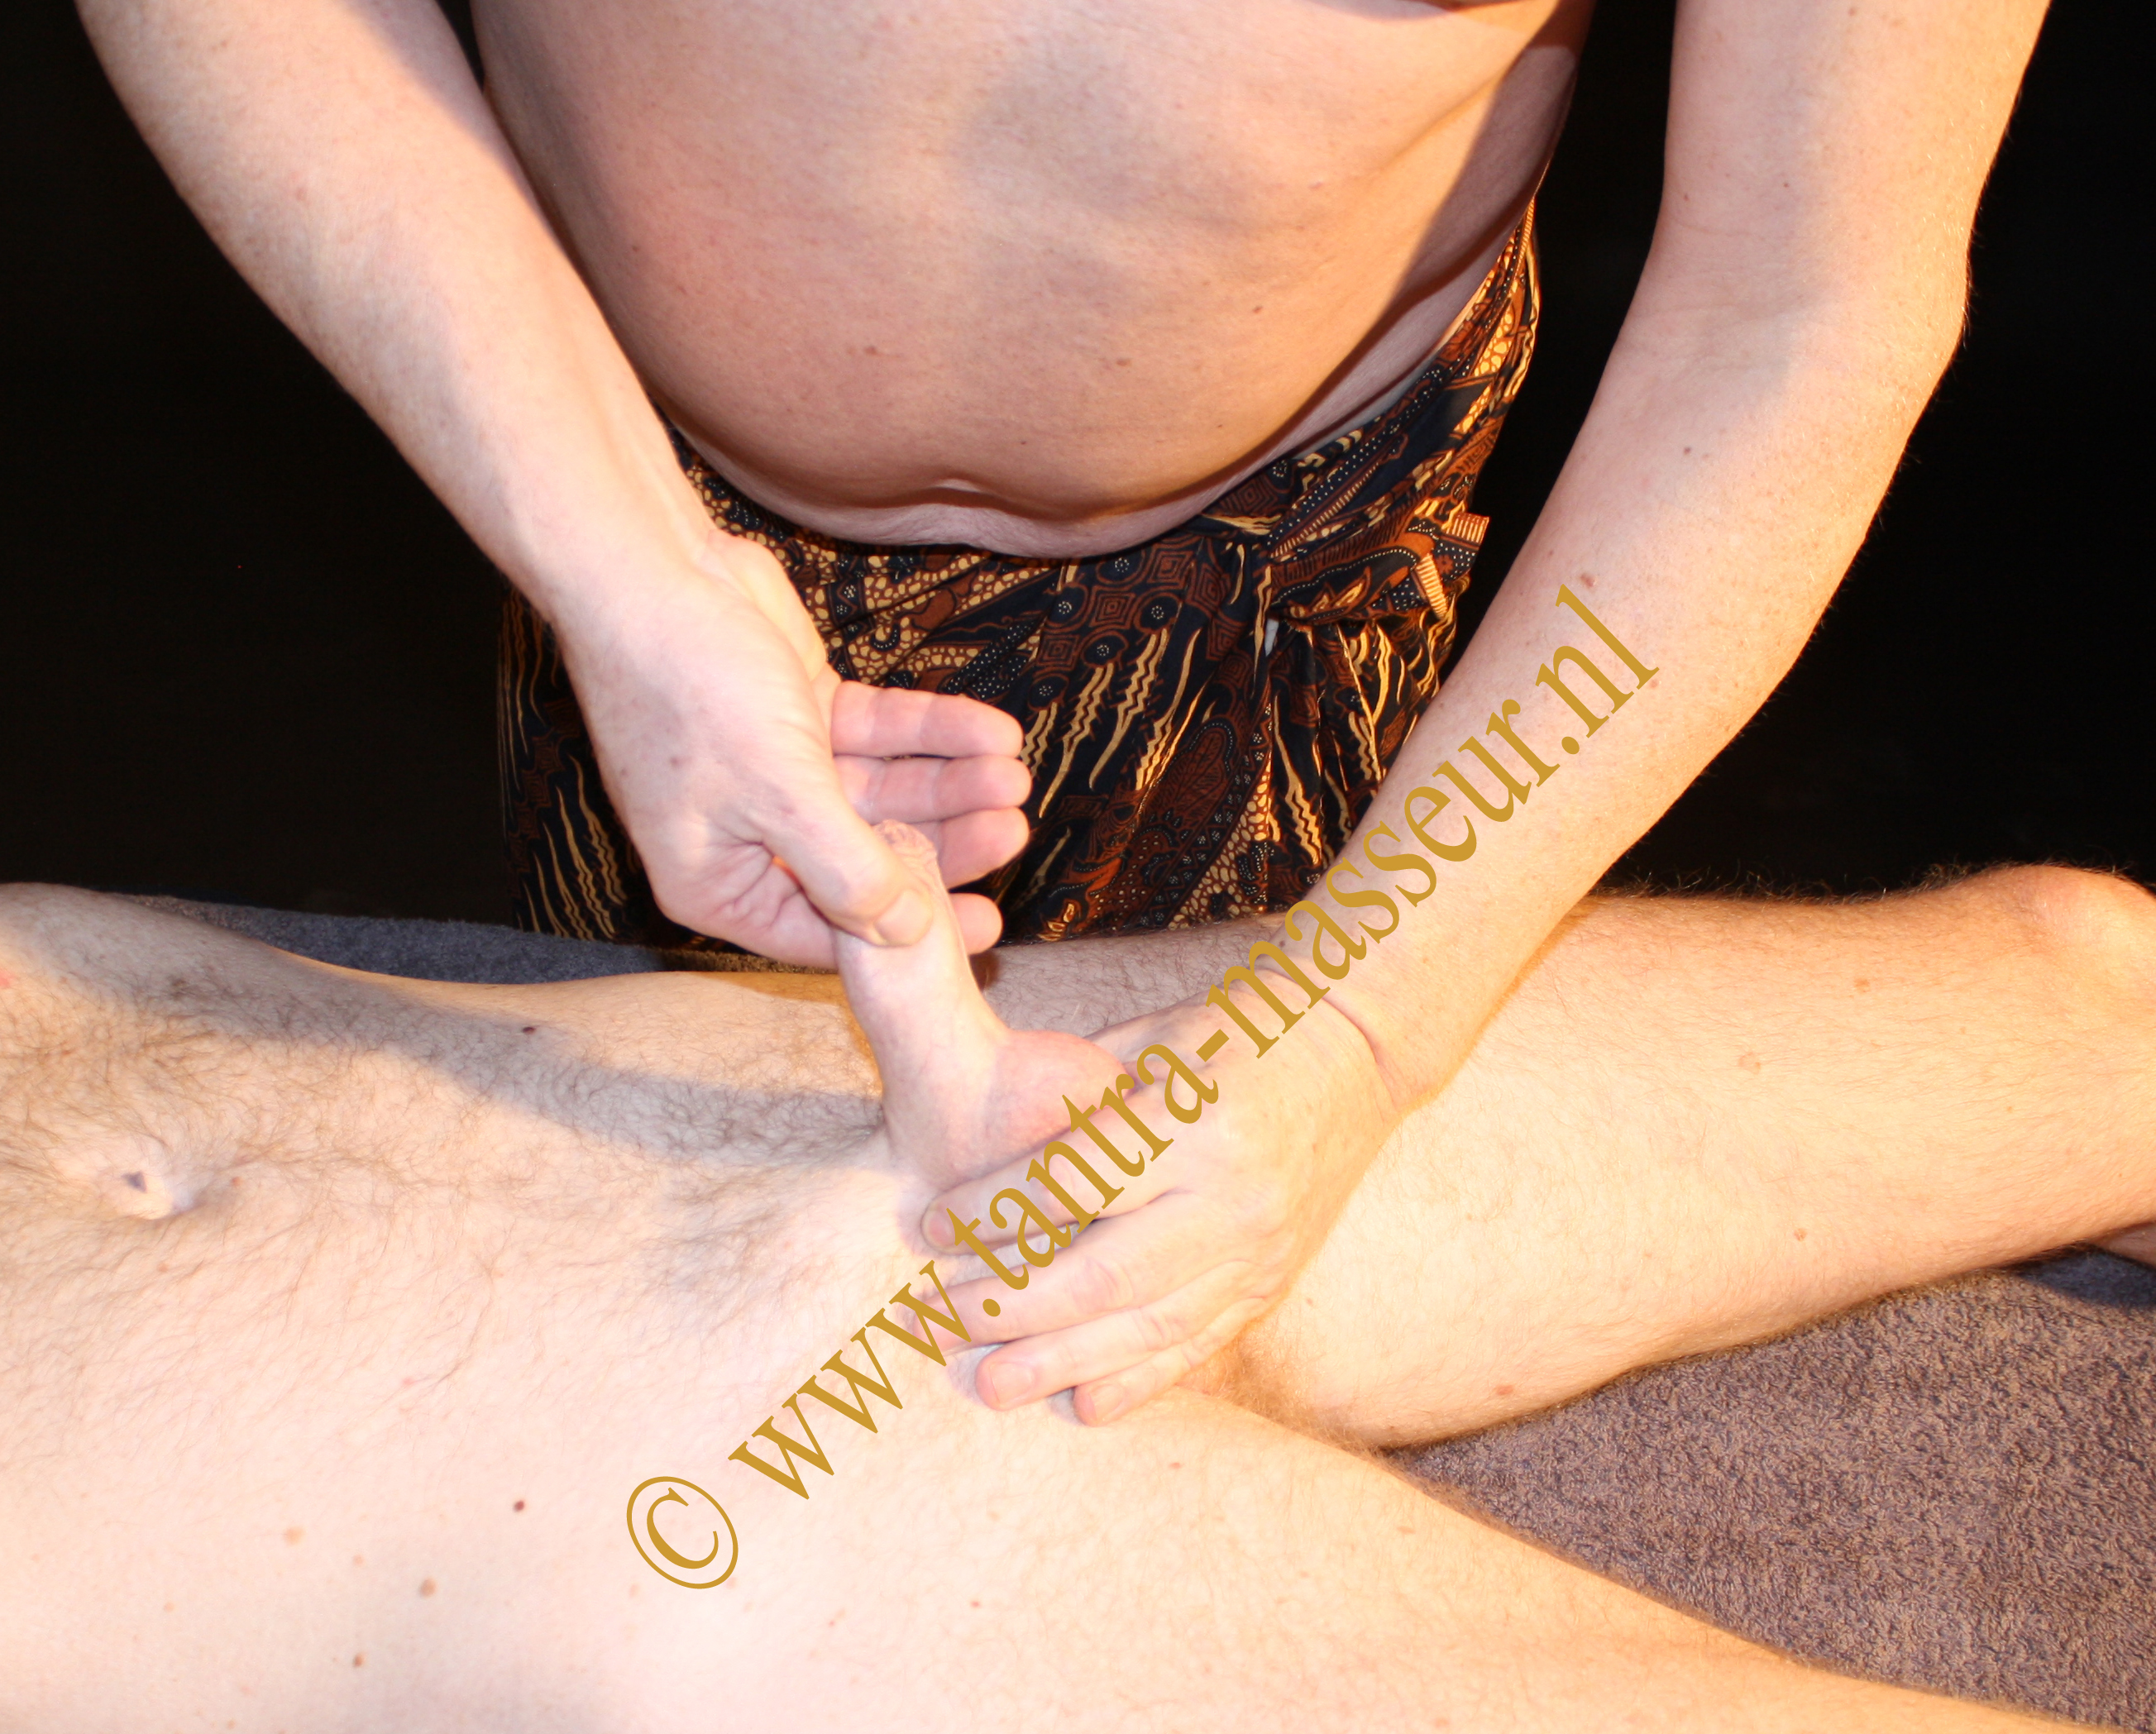 body to body massage brabant sexplaats nl